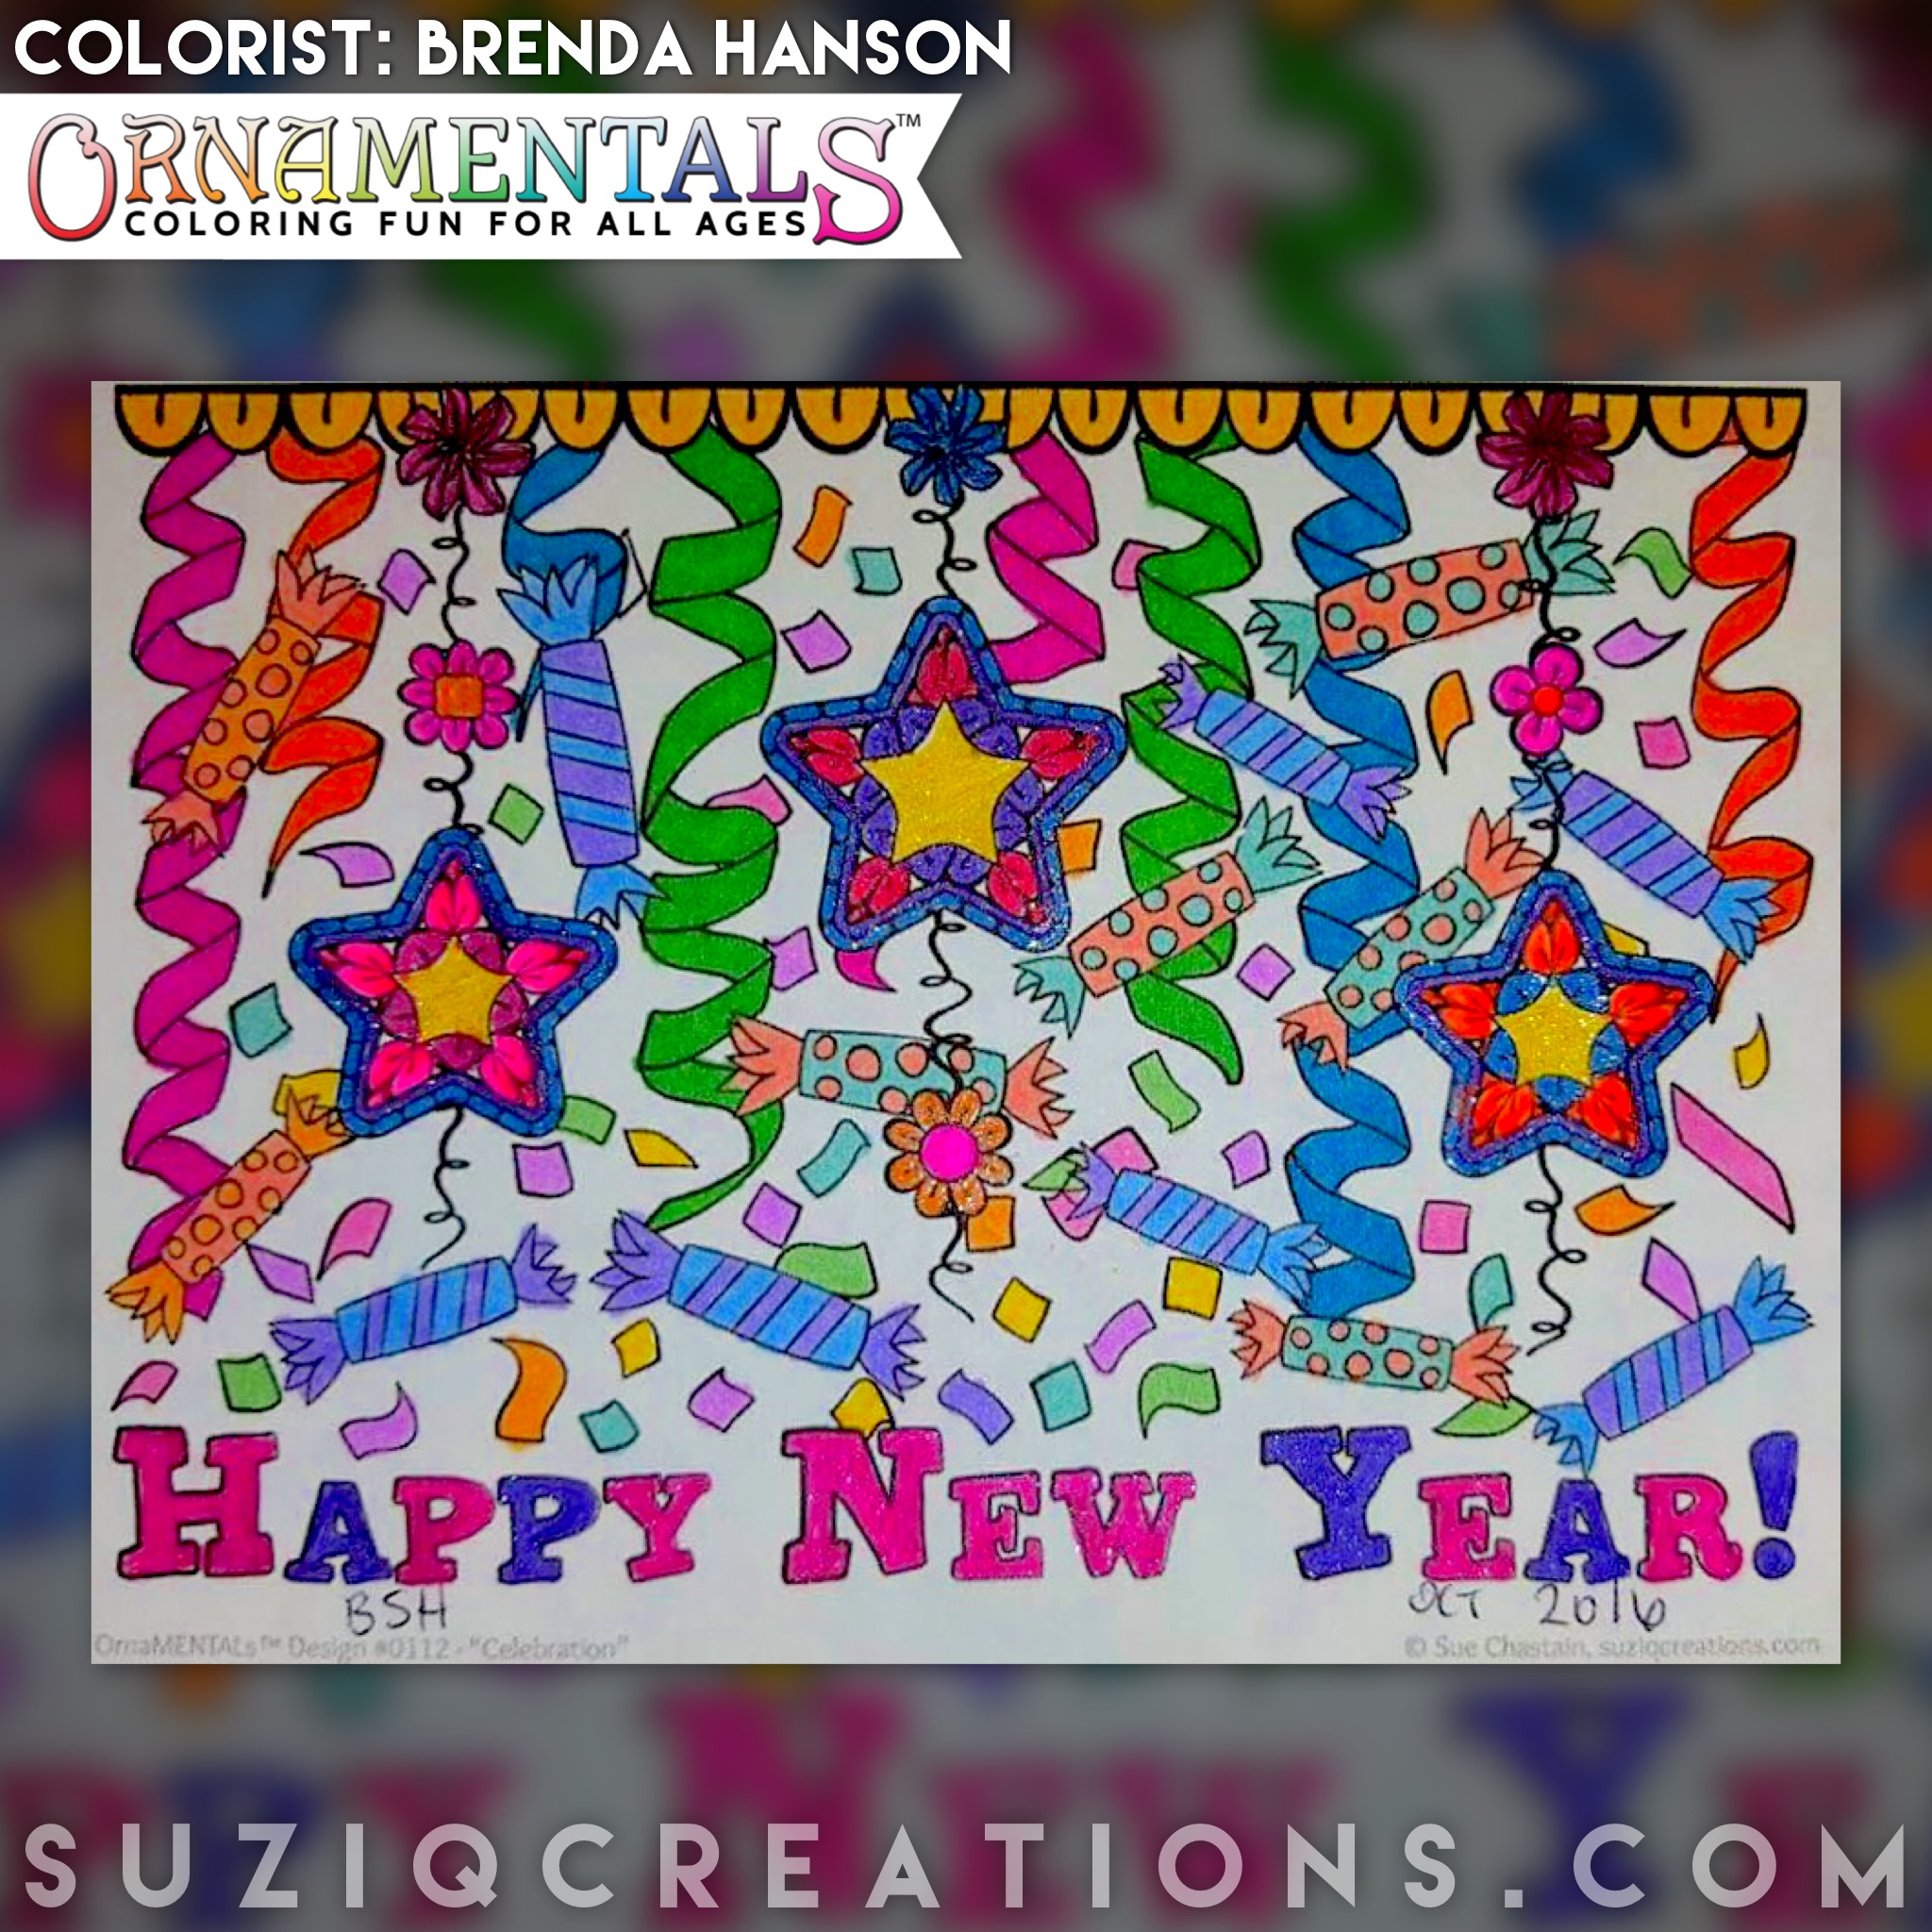 Happy New Year colored by Brenda Hanson